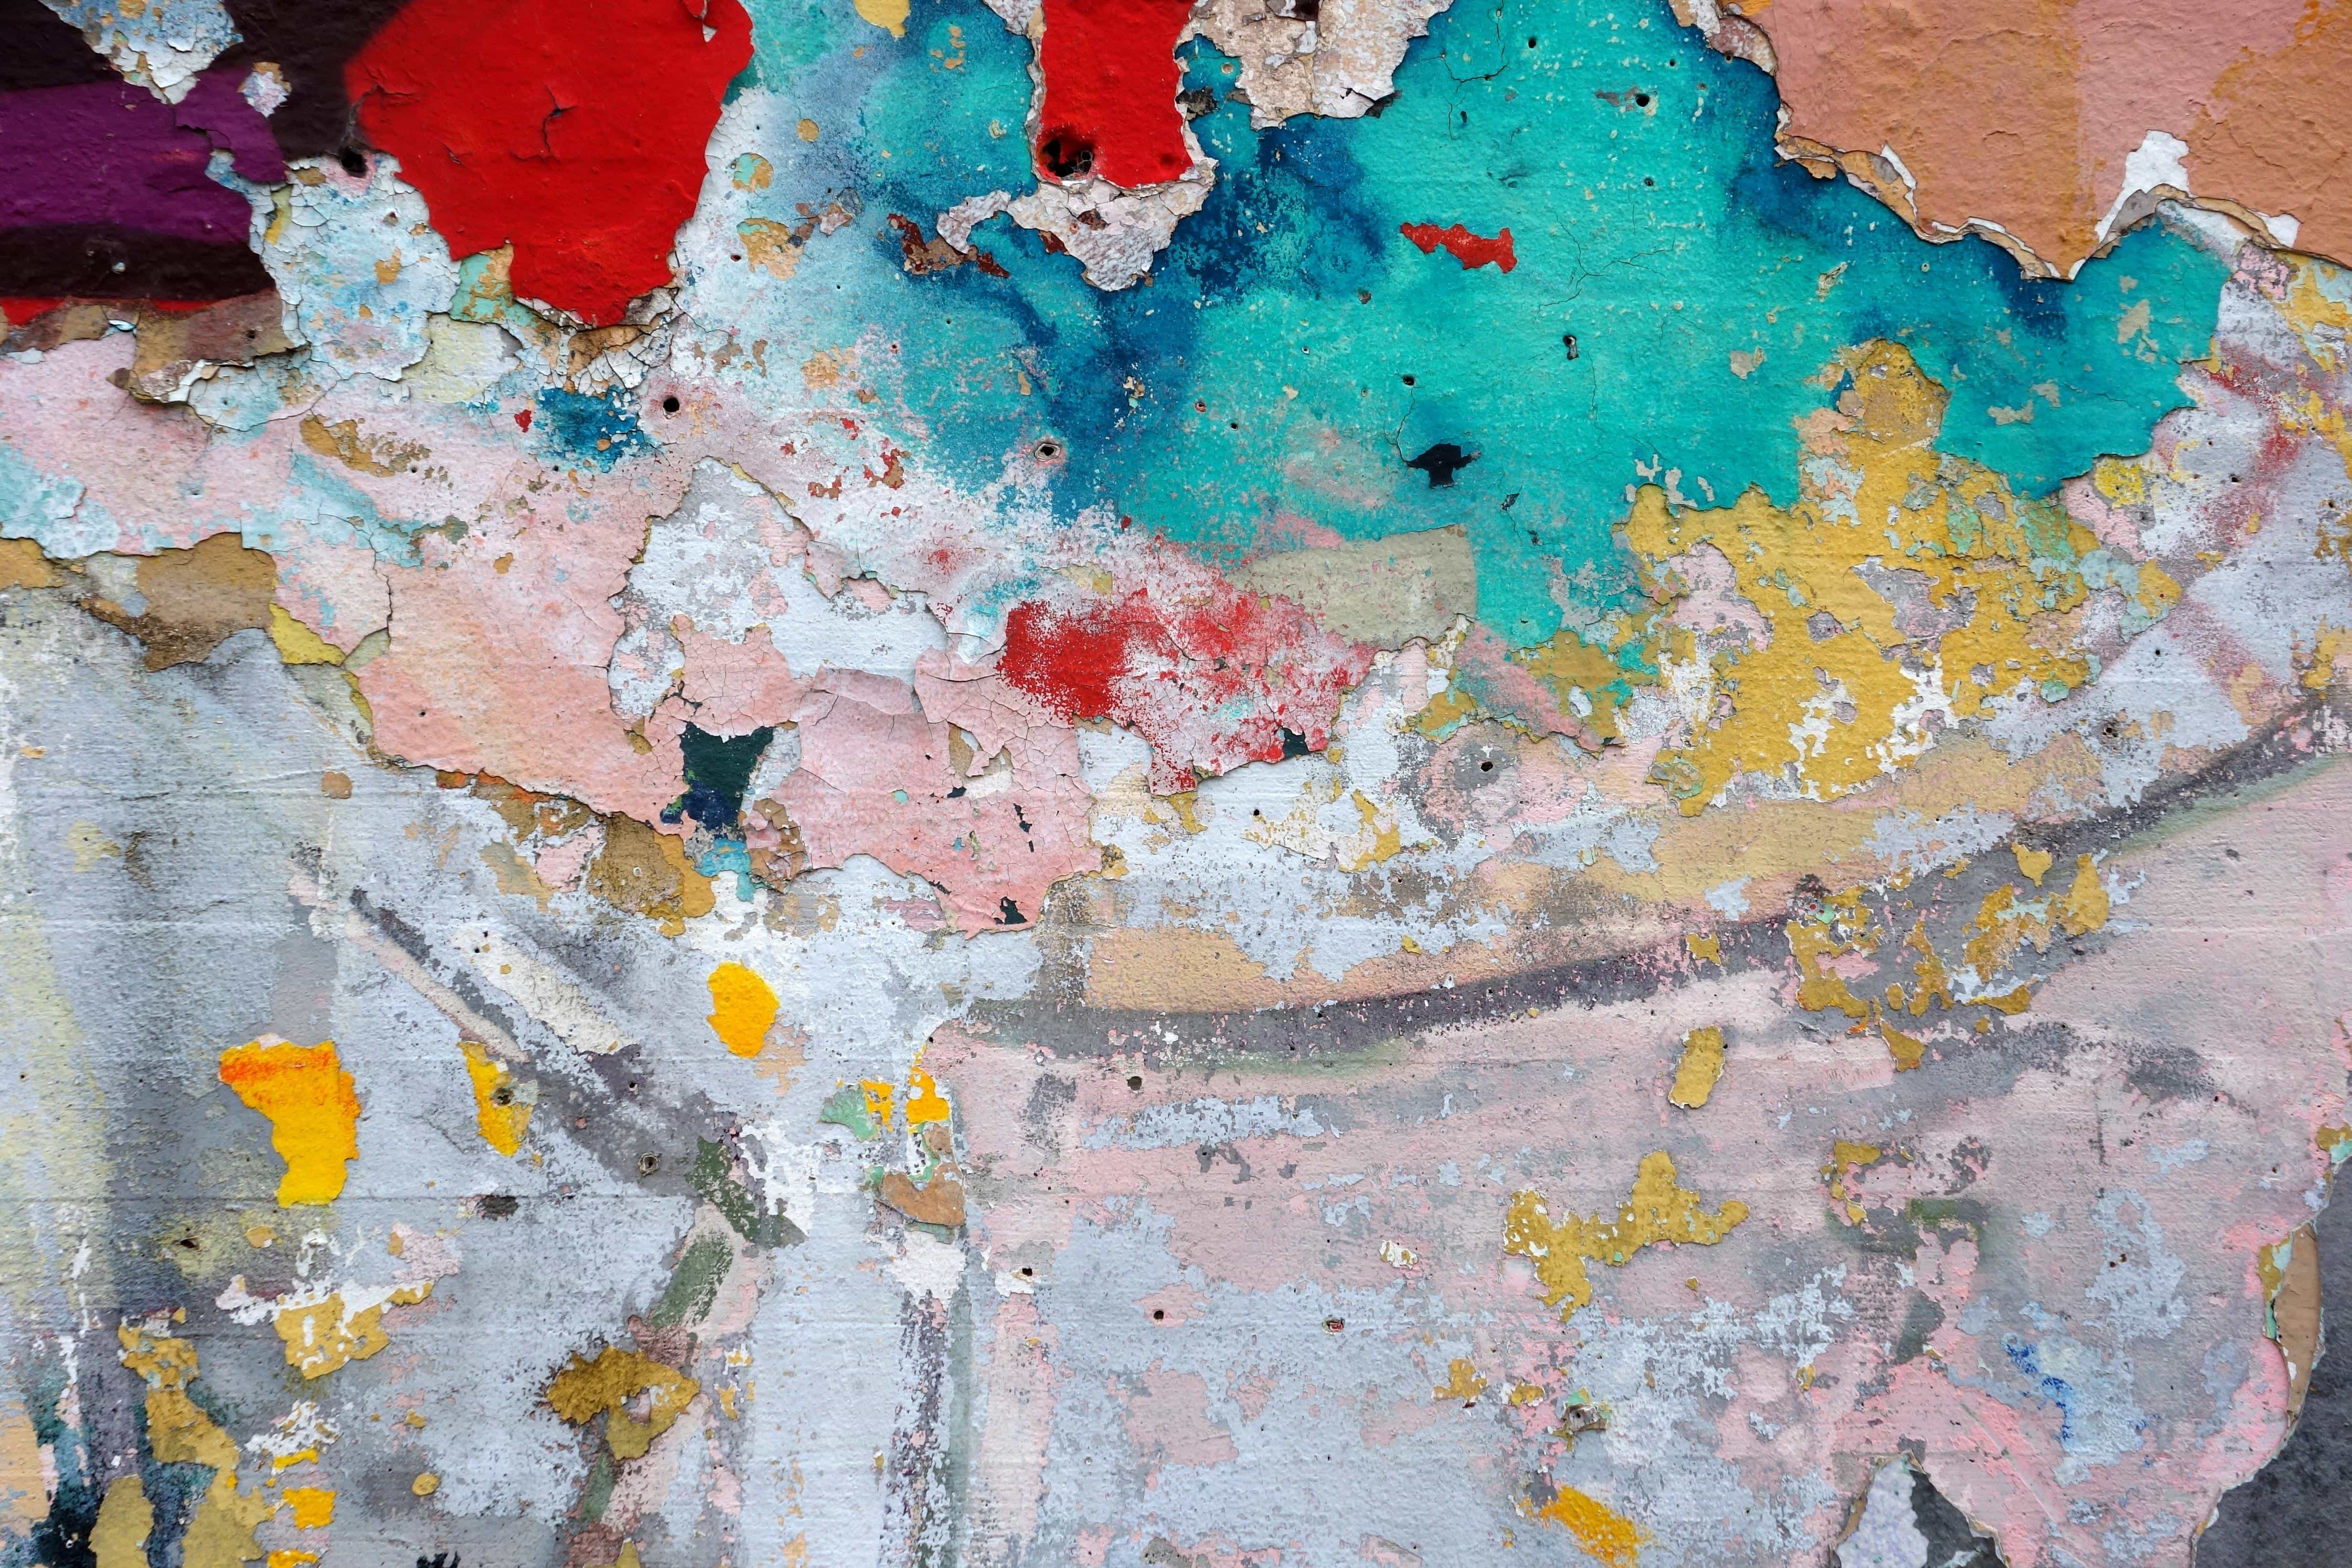 Free Picture Dirty Stain Art Urban Colorful Texture